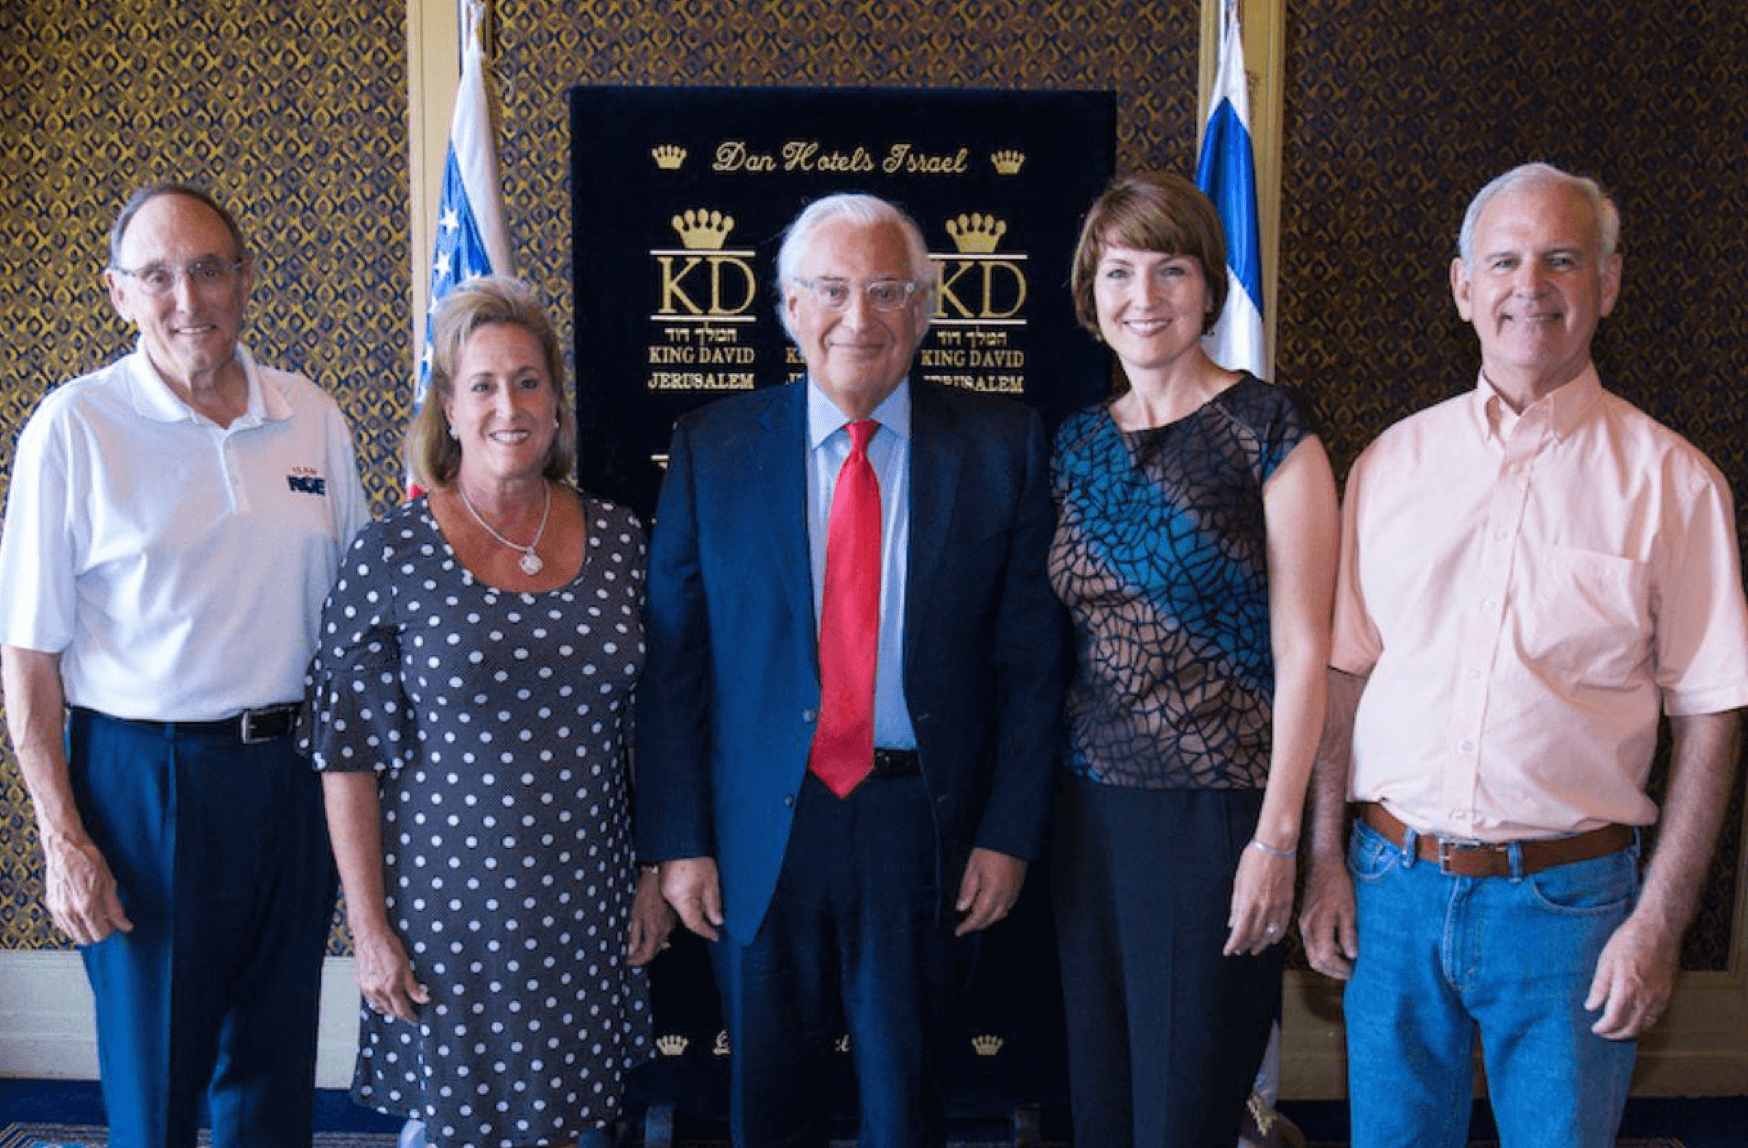 Left to Right: Rep. Phil Roe, Rep. Ann Wagner, U.S. Ambassador to Israel David Friedman, Rep. Cathy McMorris Rodgers, Rep. Bradley Byrne